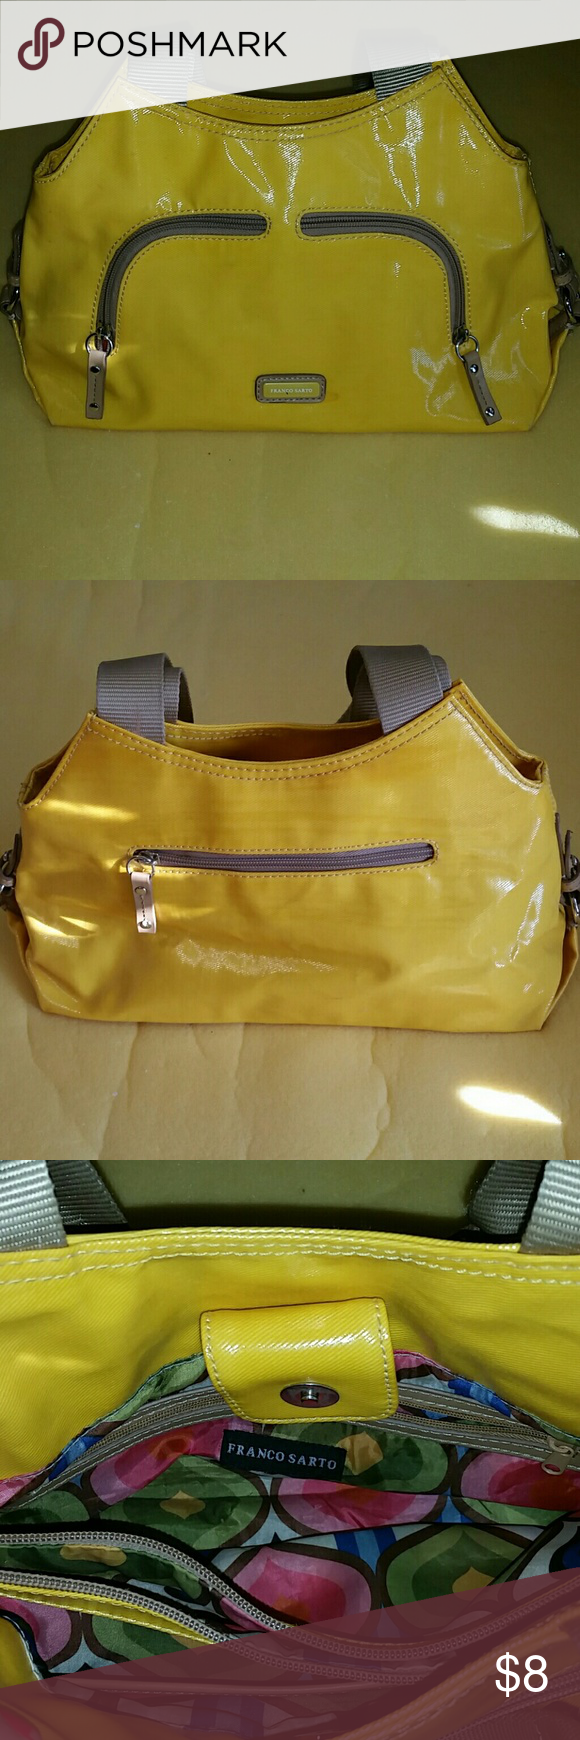 Franco sarto purse Cute and yellow with multiple pockets. Franco Sarto Bags Satchels